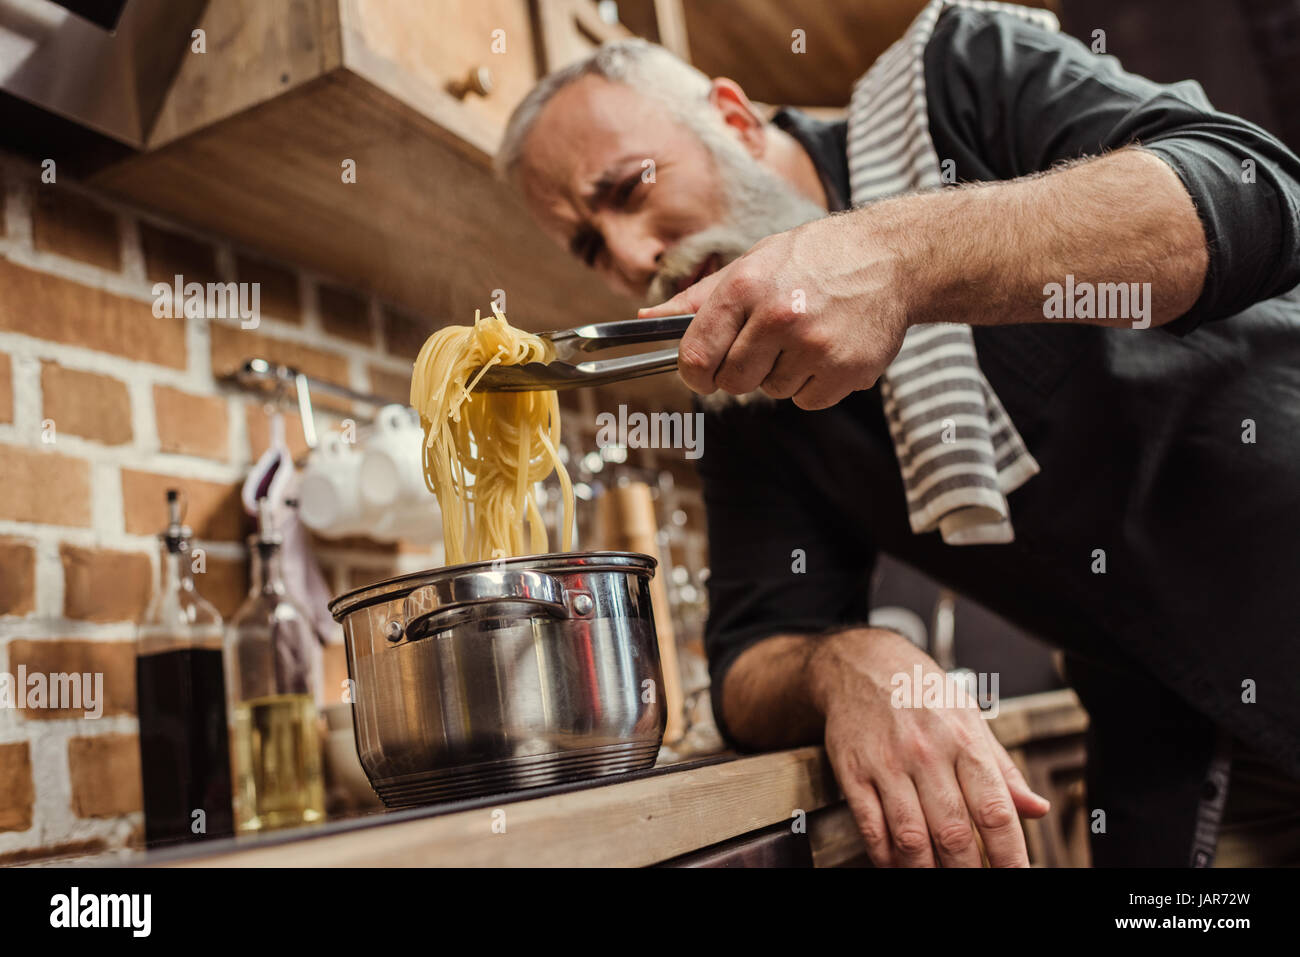 Man cooking spaghetti  Stock Photo